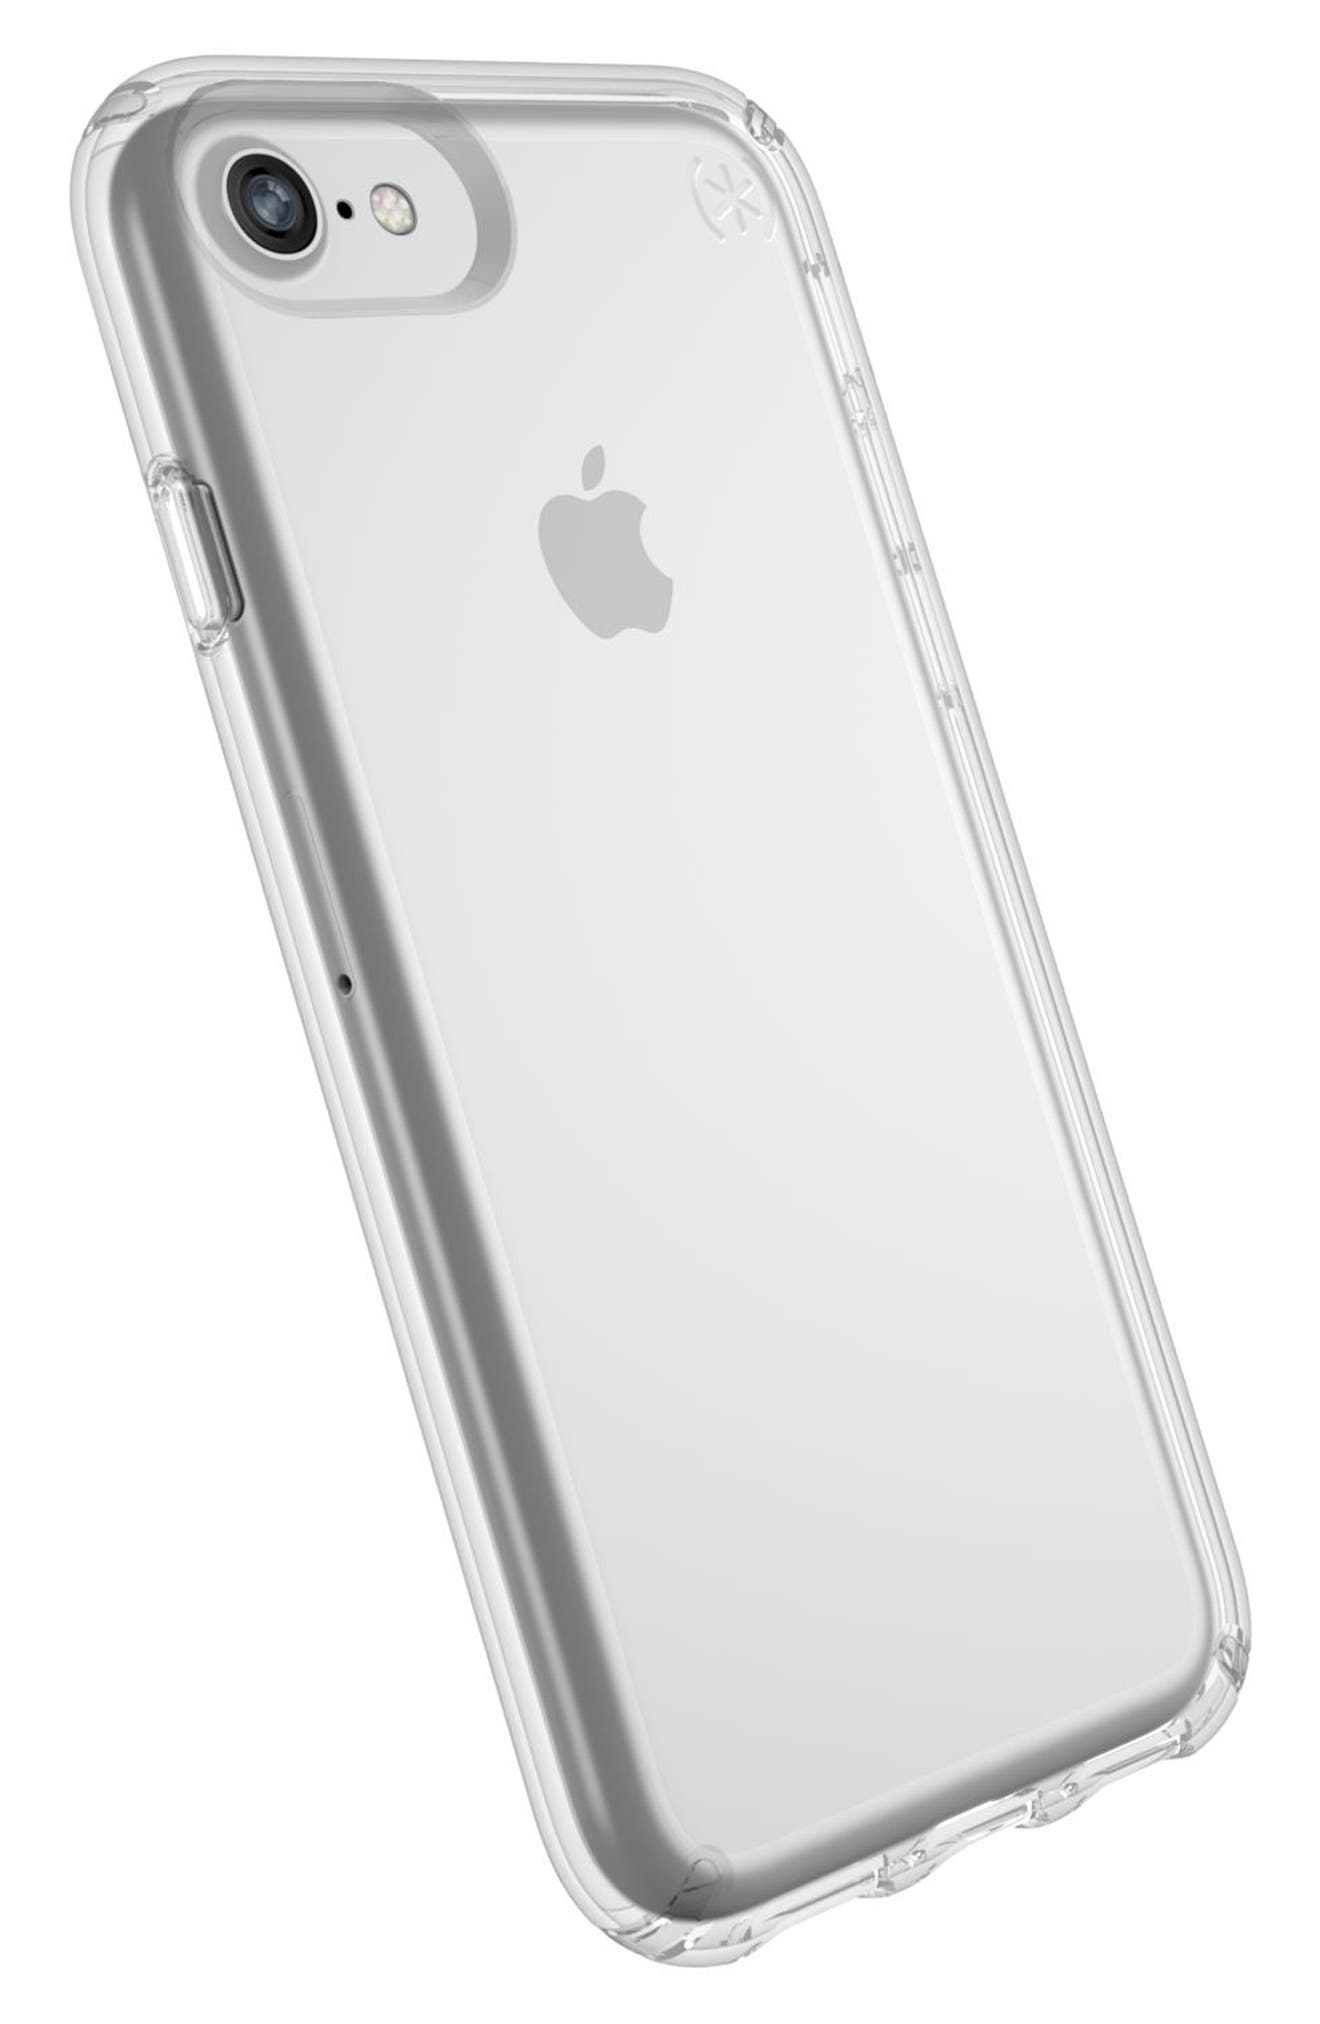 Transparent iPhone 6/6s/7/8 Case,                             Alternate thumbnail 4, color,                             Clear/ Clear